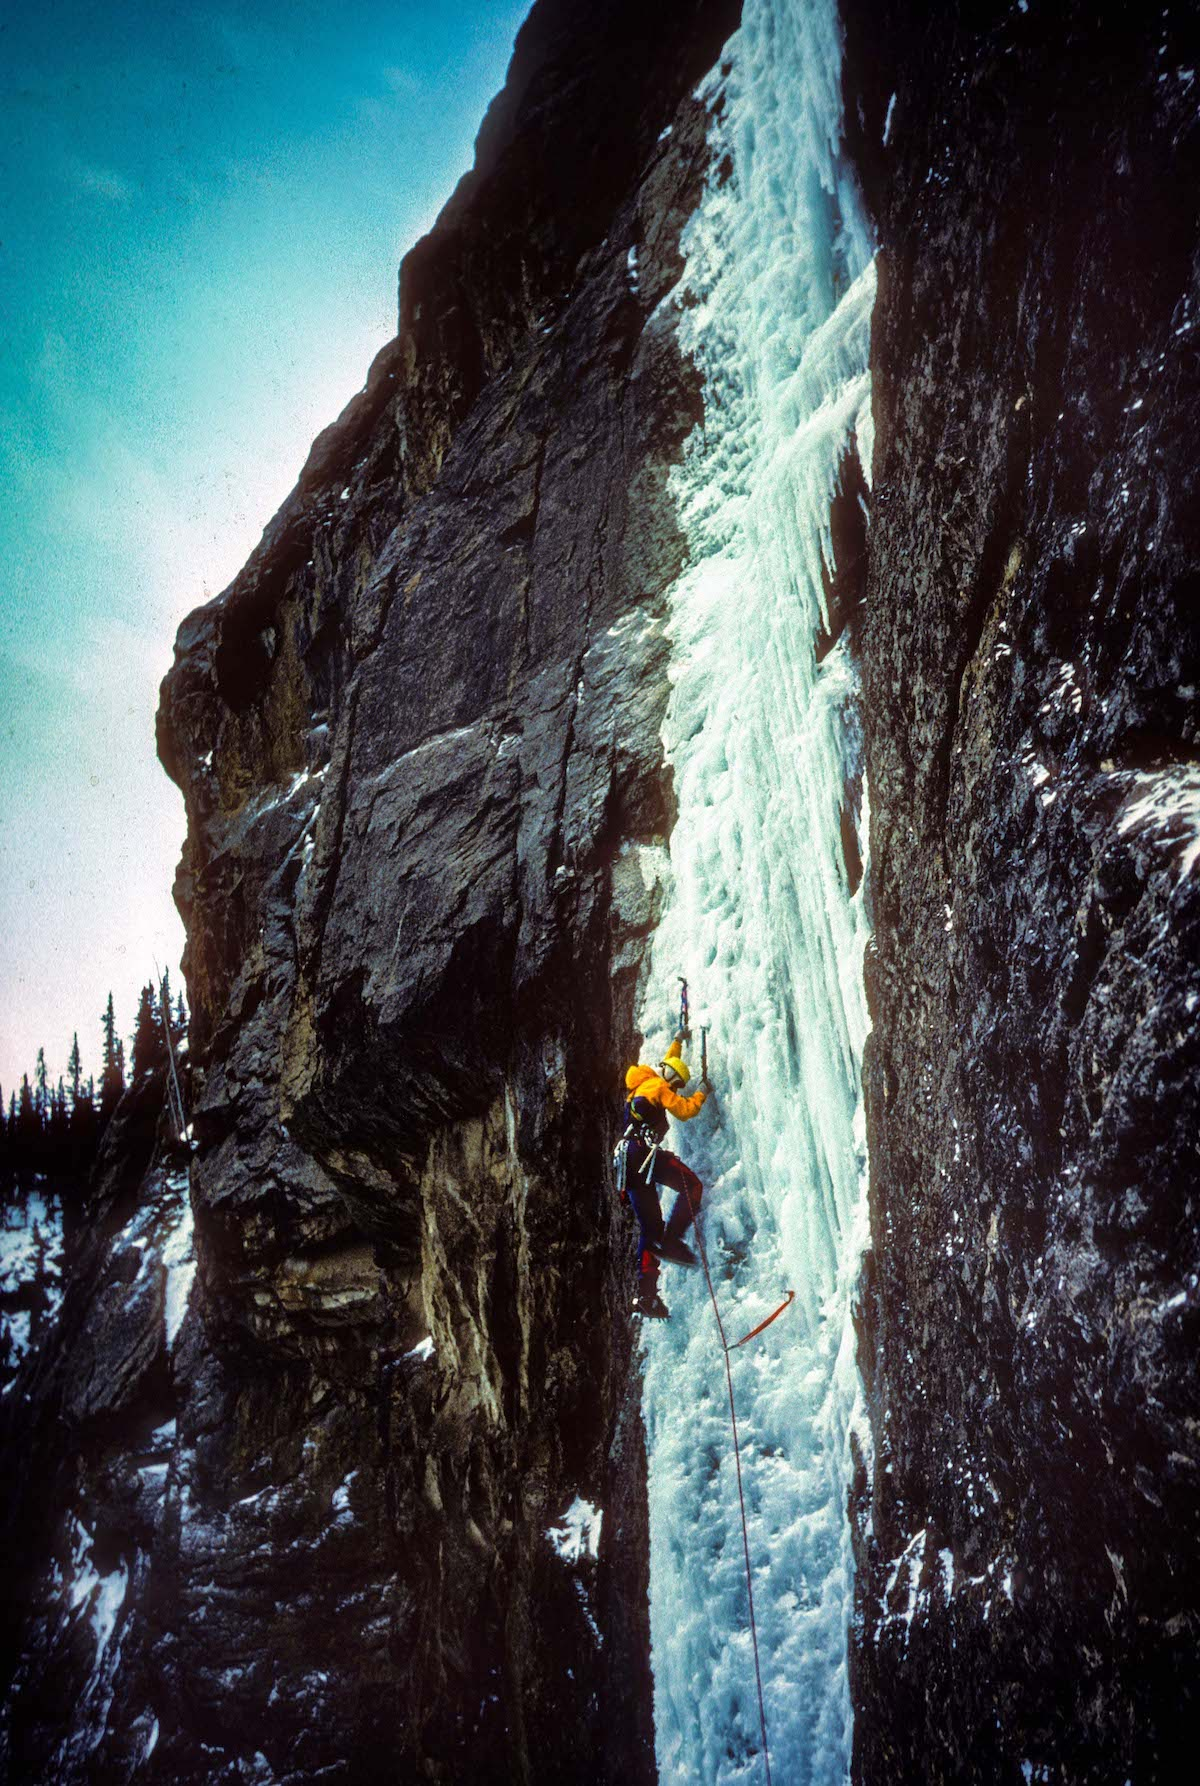 Sharon Wood leads the first pitch of Bourgeau Right-Hand in the Canadian Rockies in l985. [Photo] Pat Morrow, courtesy of Mountaineers Books